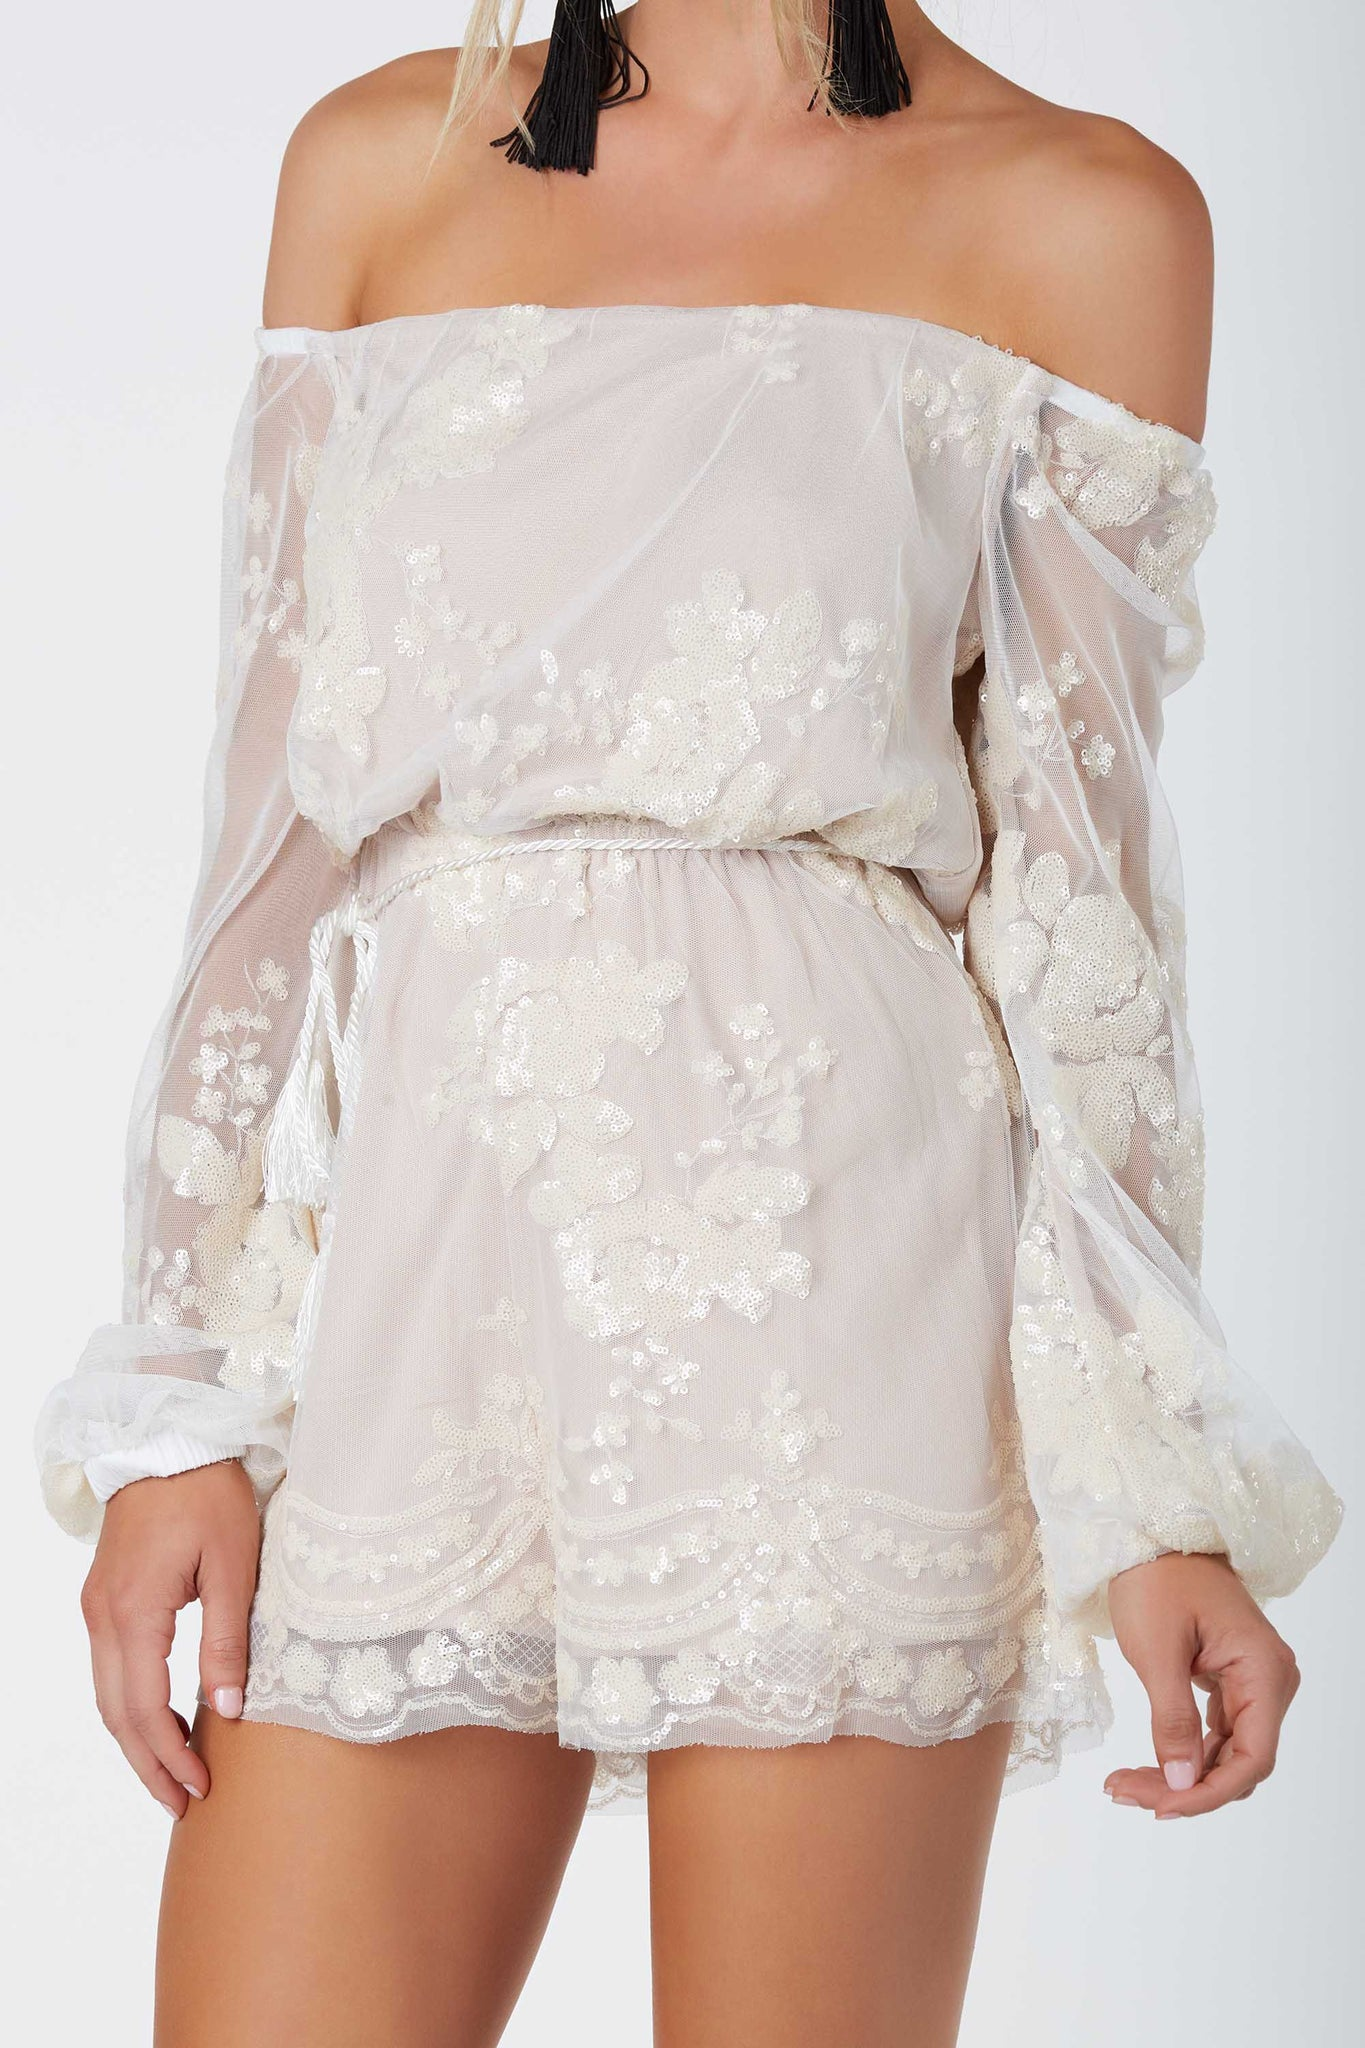 Stunning off shoulder mesh romper with chic nude lining and gorgeous sequin detailing throughout. Roped tie aroung the waist for added detail.